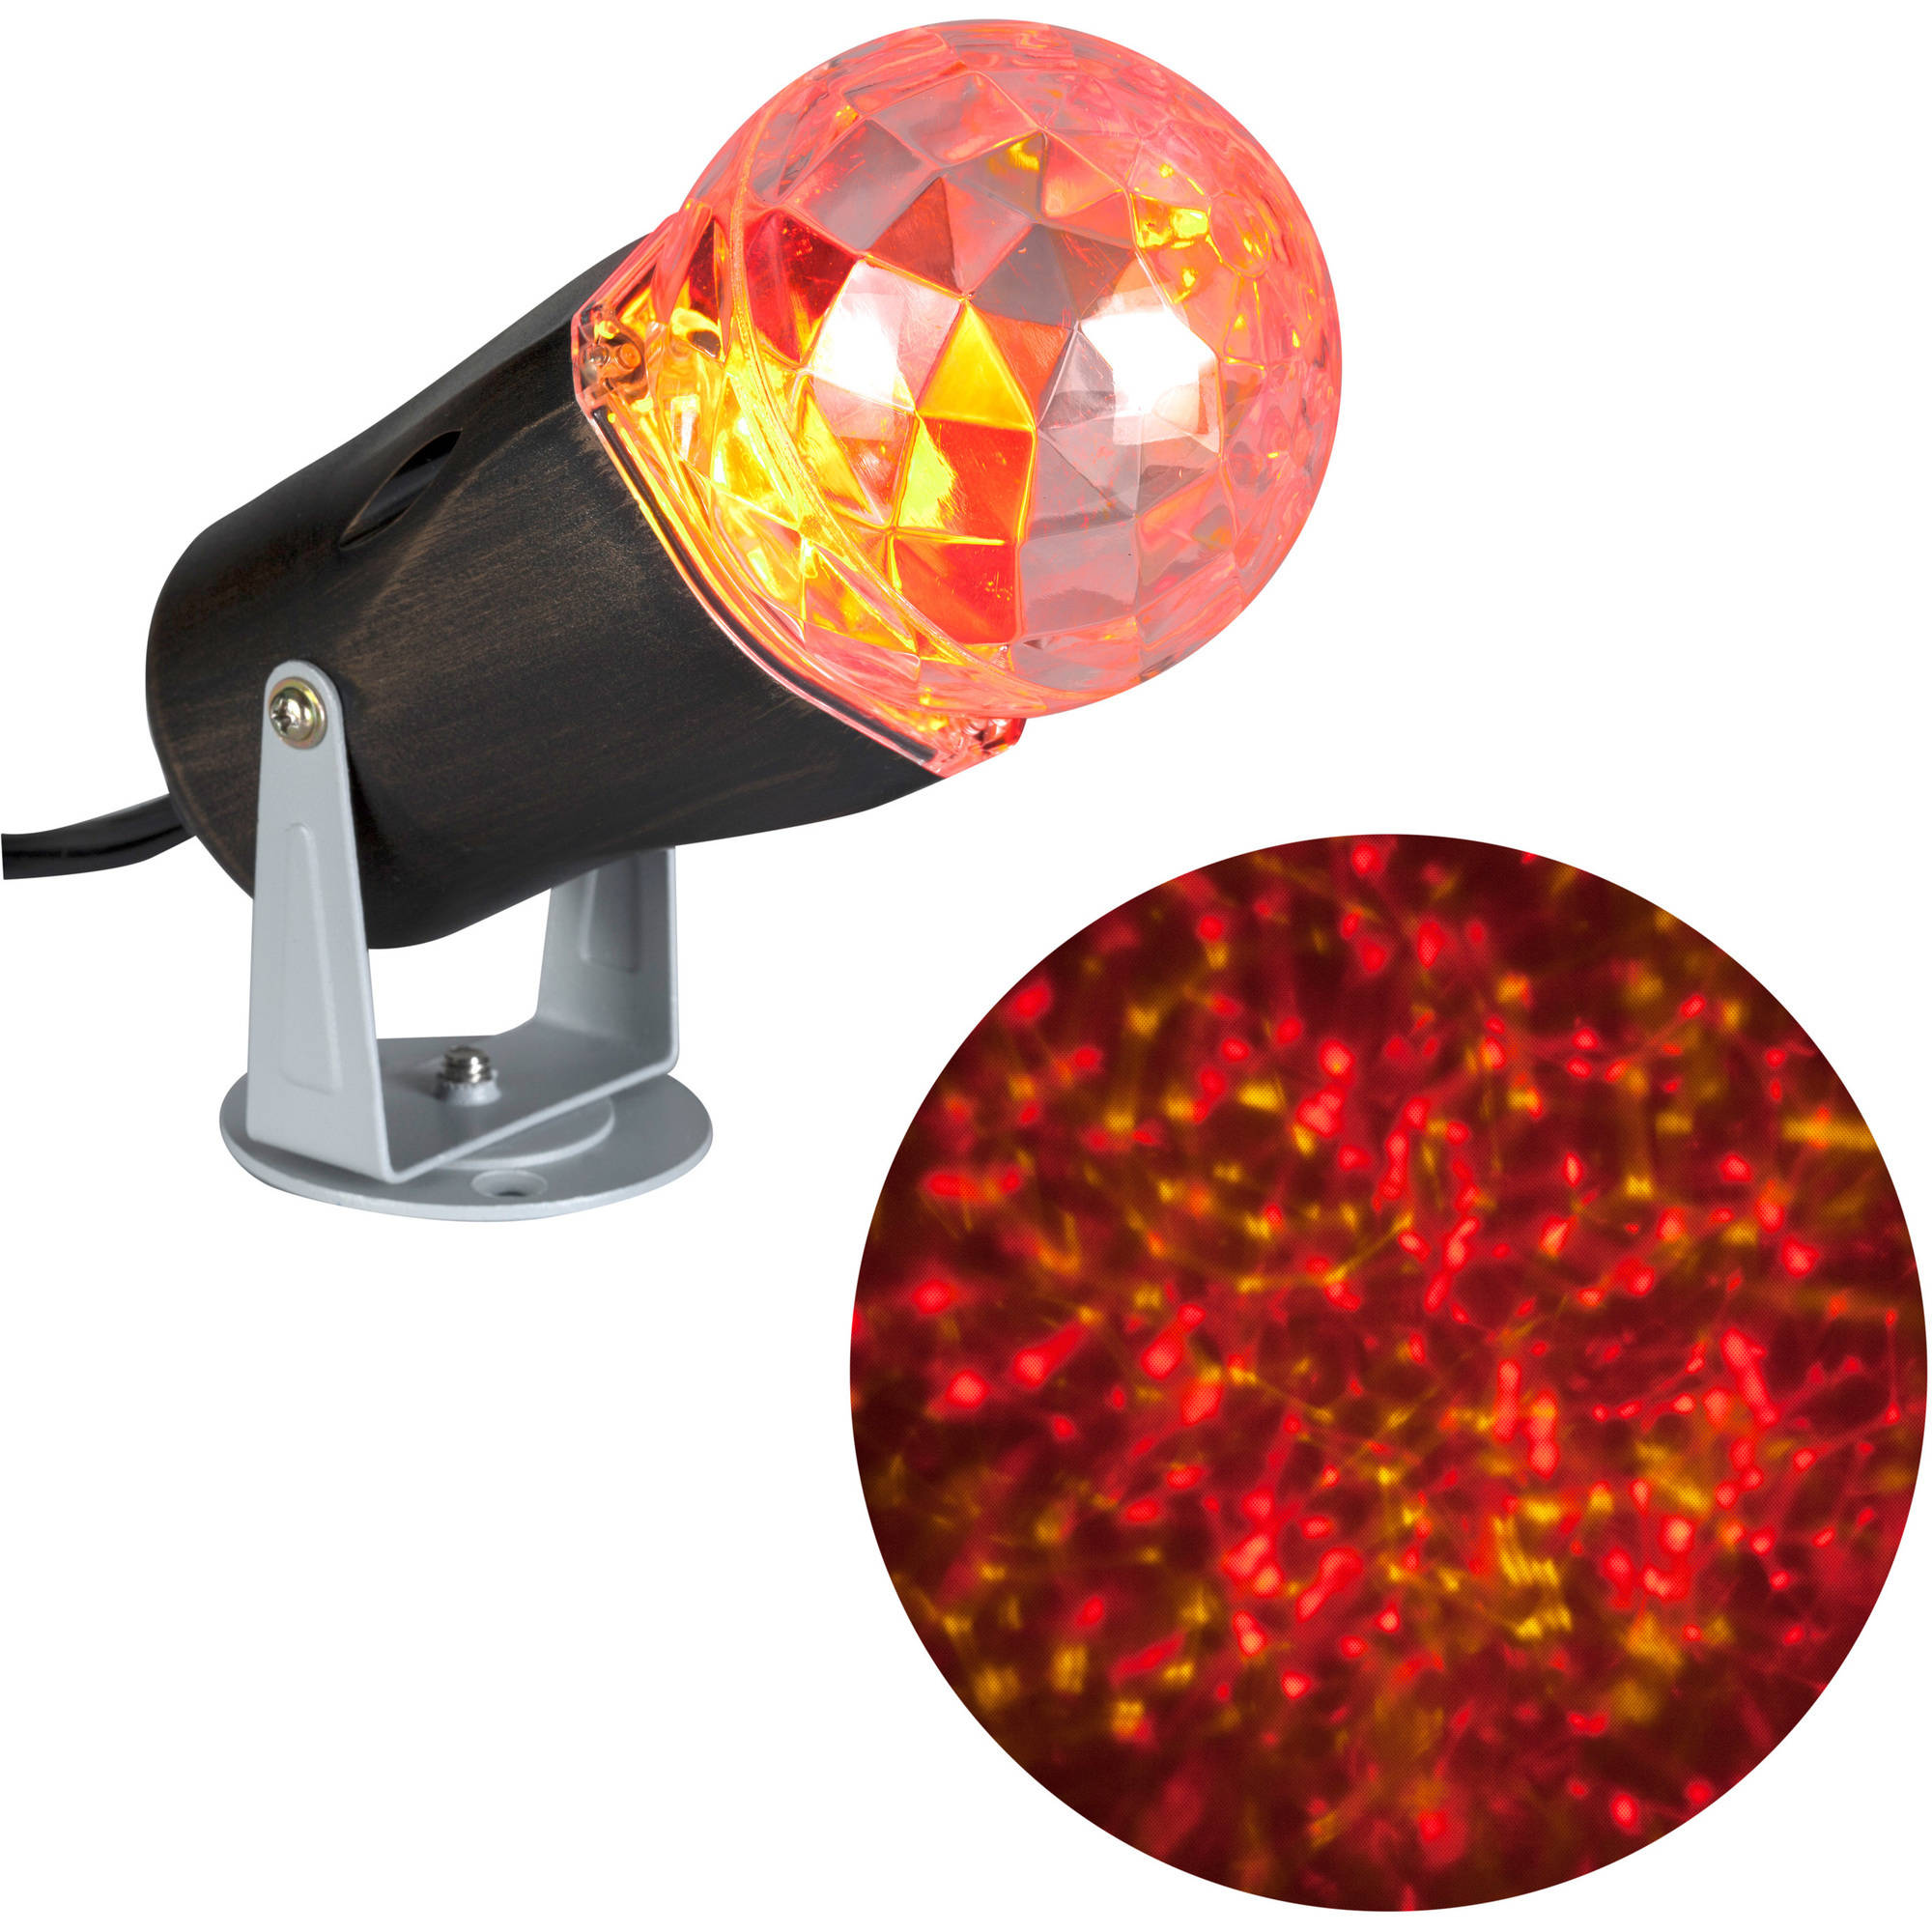 Kaleidoscope Projection Outdoor Spotlight Halloween Decoration